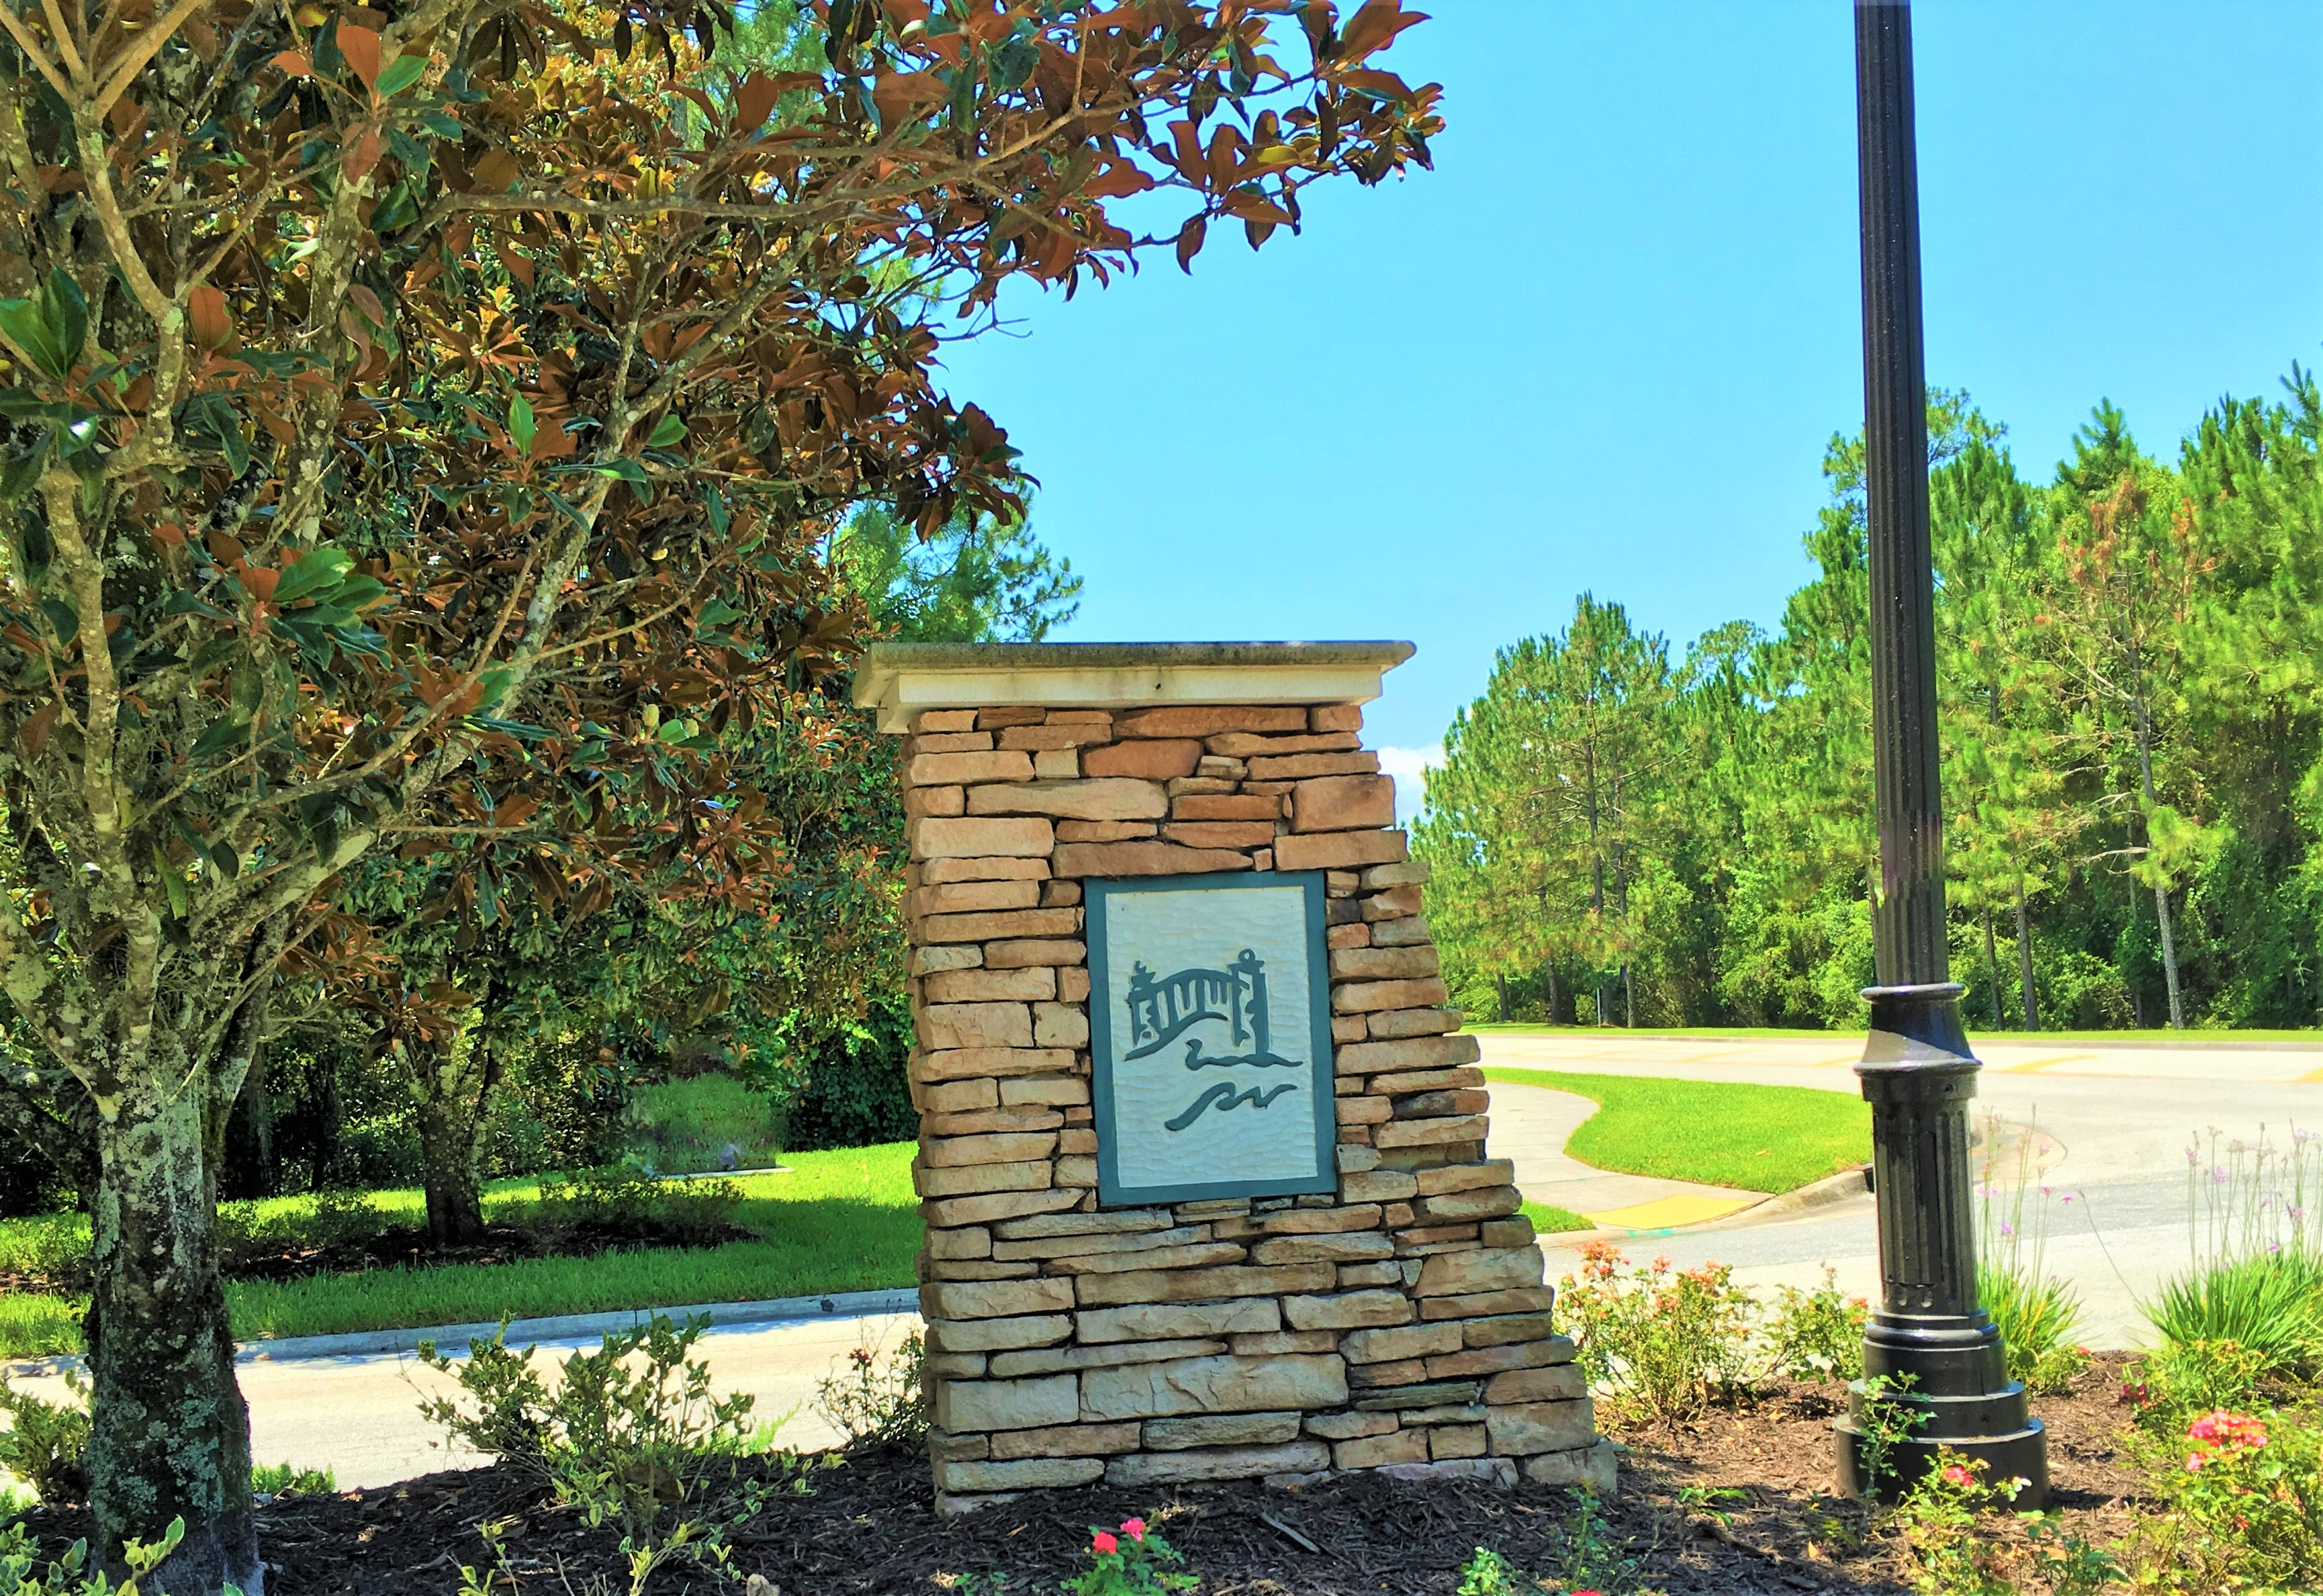 St Johns Golf and Country Club Homes For Sale on engle homes floor plans, buckingham homes floor plans, windsor homes floor plans, centex homes floor plans, coppenbarger homes floor plans, classic american homes floor plans,